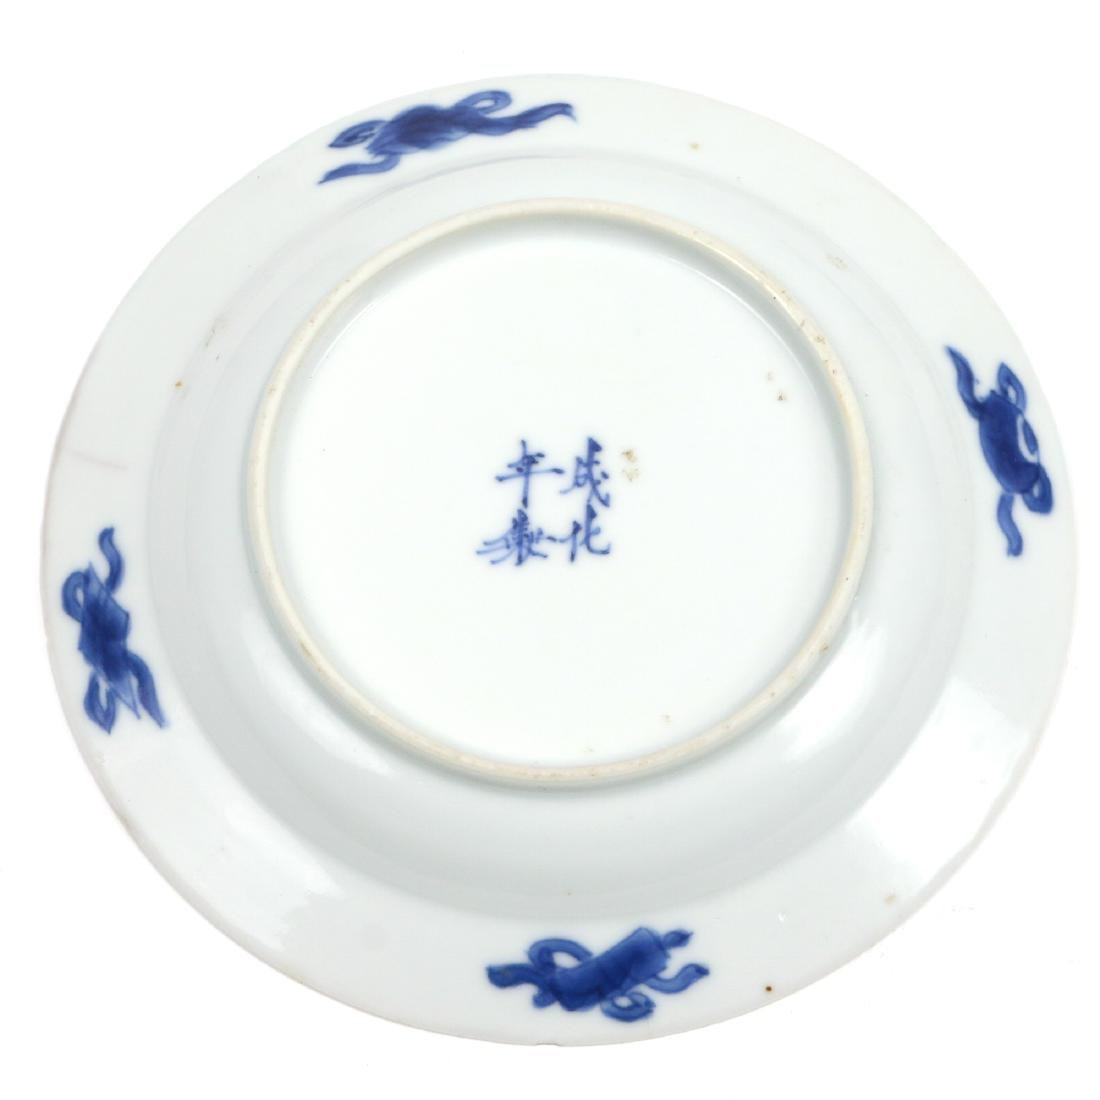 CHINESE BLUE & WHITE PORCELAIN CUP & SAUCER - 6